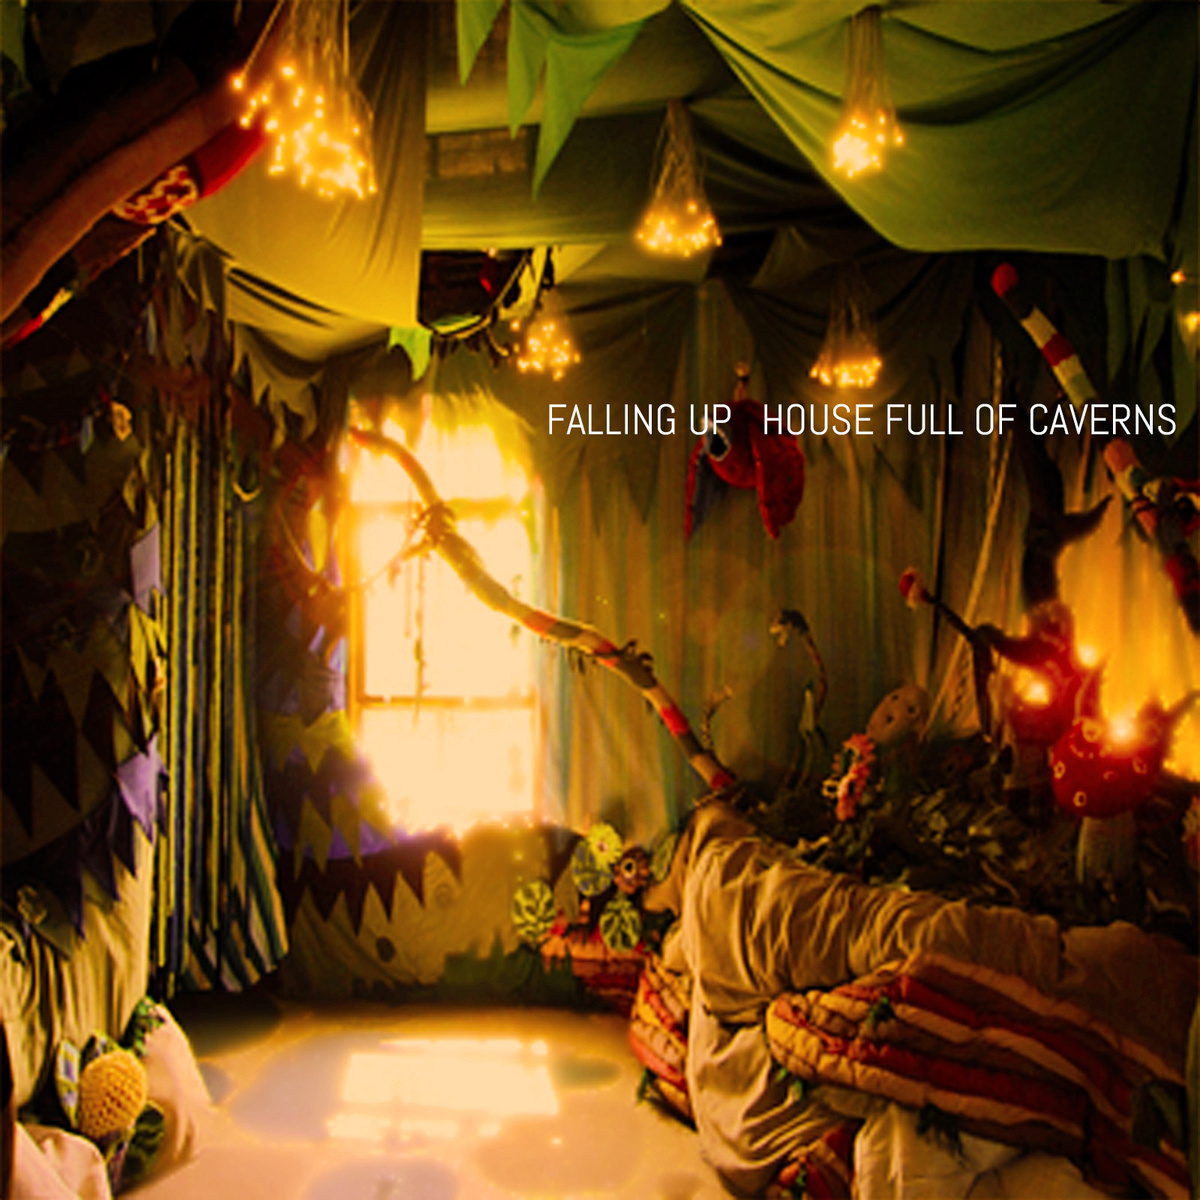 Artists Spotlight: Falling Up Releases 'House Full of Caverns' EP